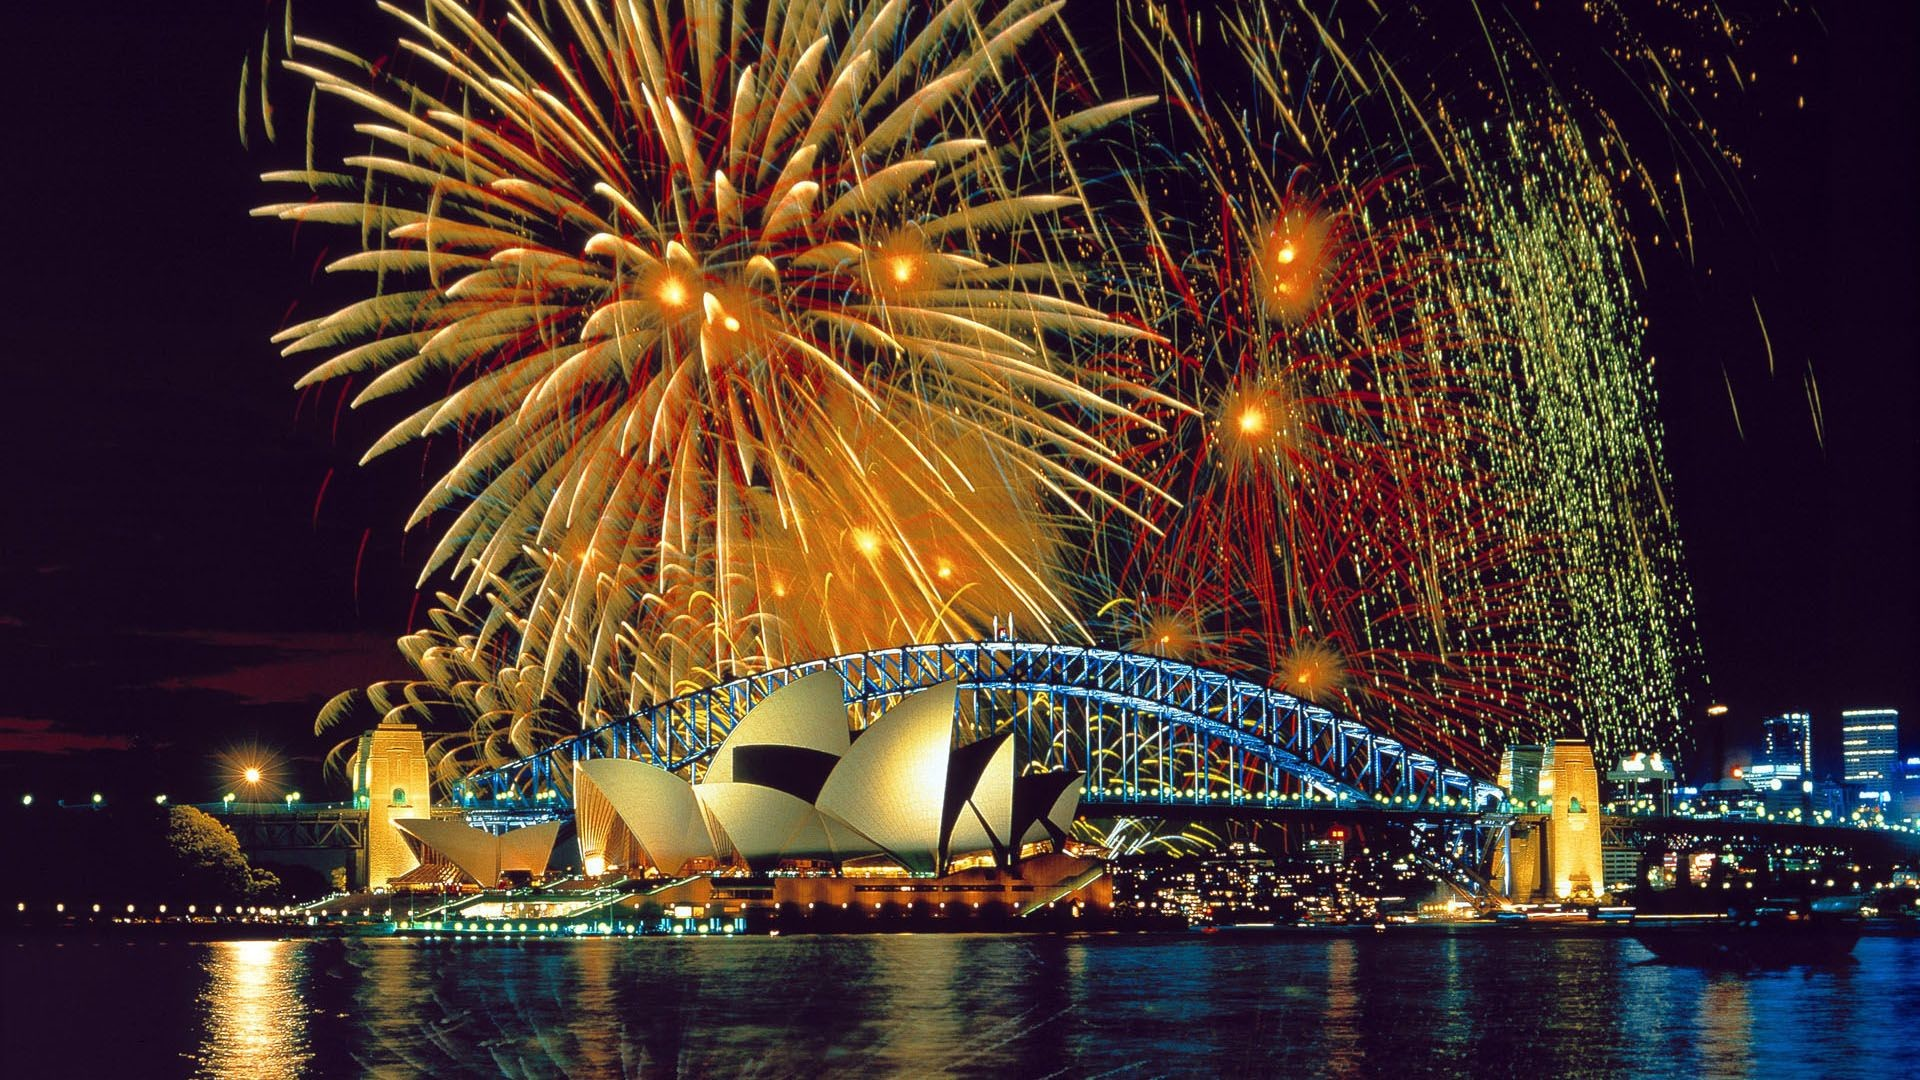 1920x1080 Sydney Opera House Fireworks HD Wallpaper. « »